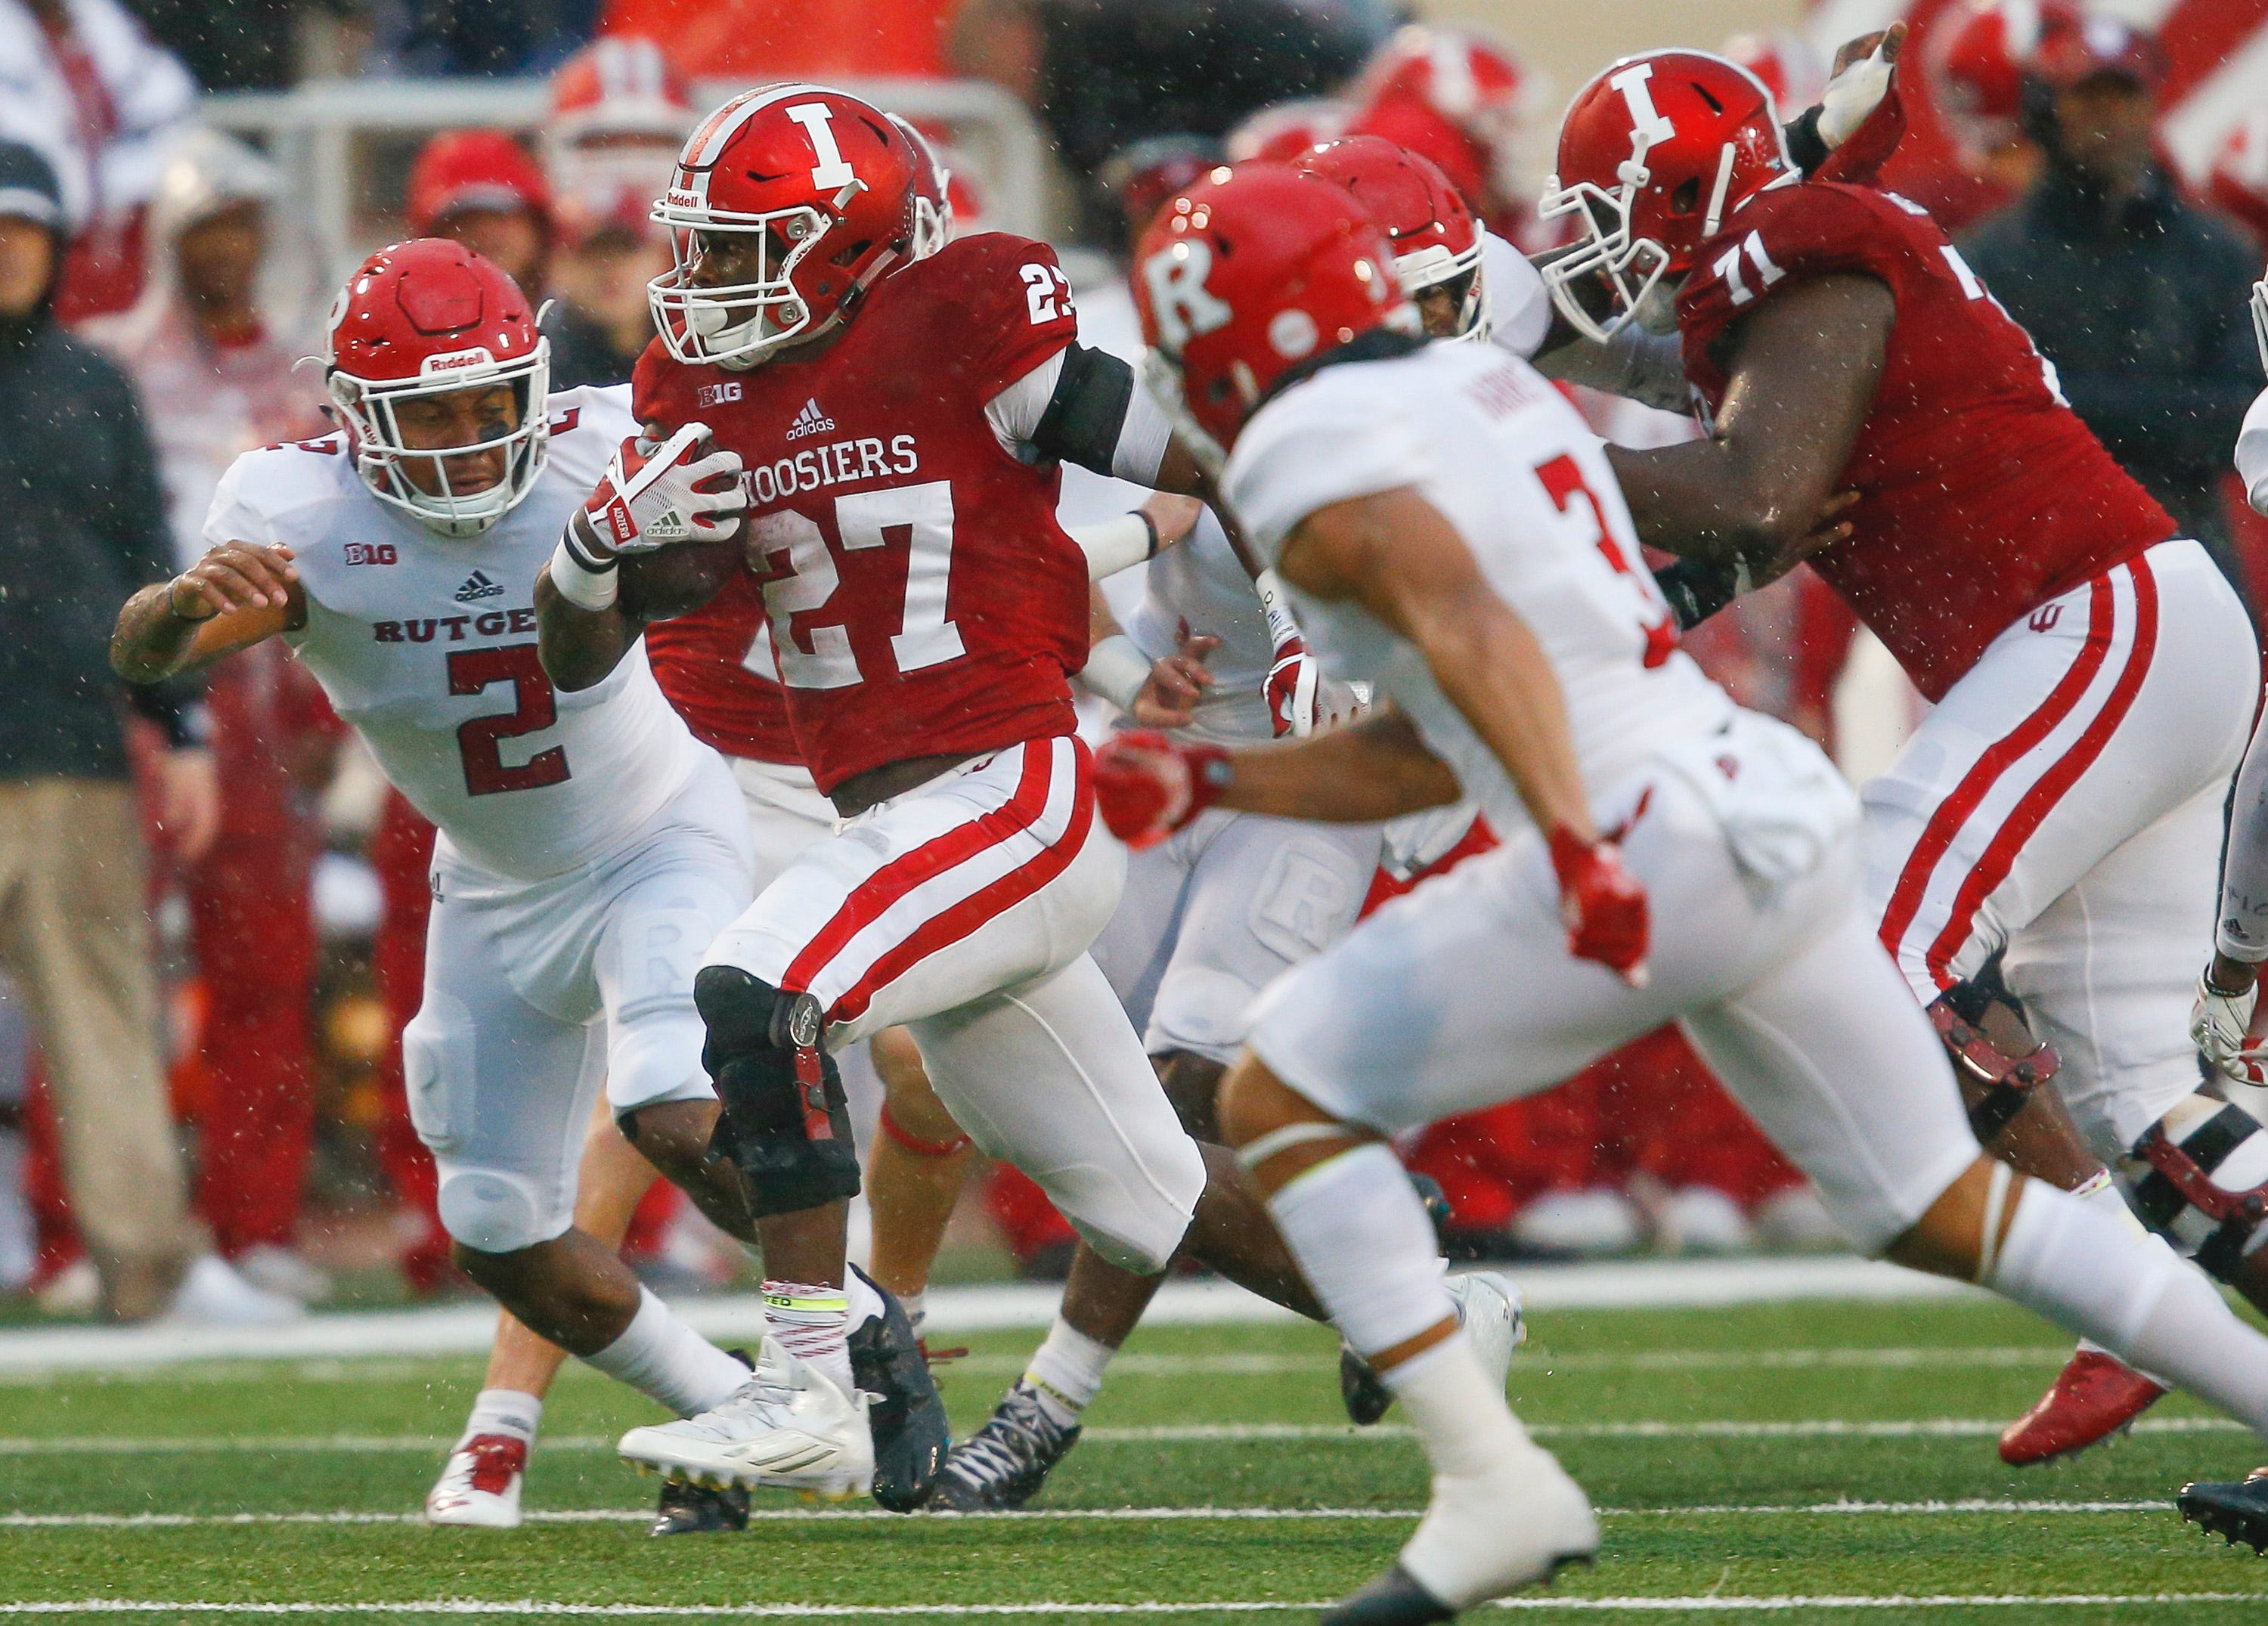 Indiana running back Morgan Ellison suspended by school for sexual assault of student